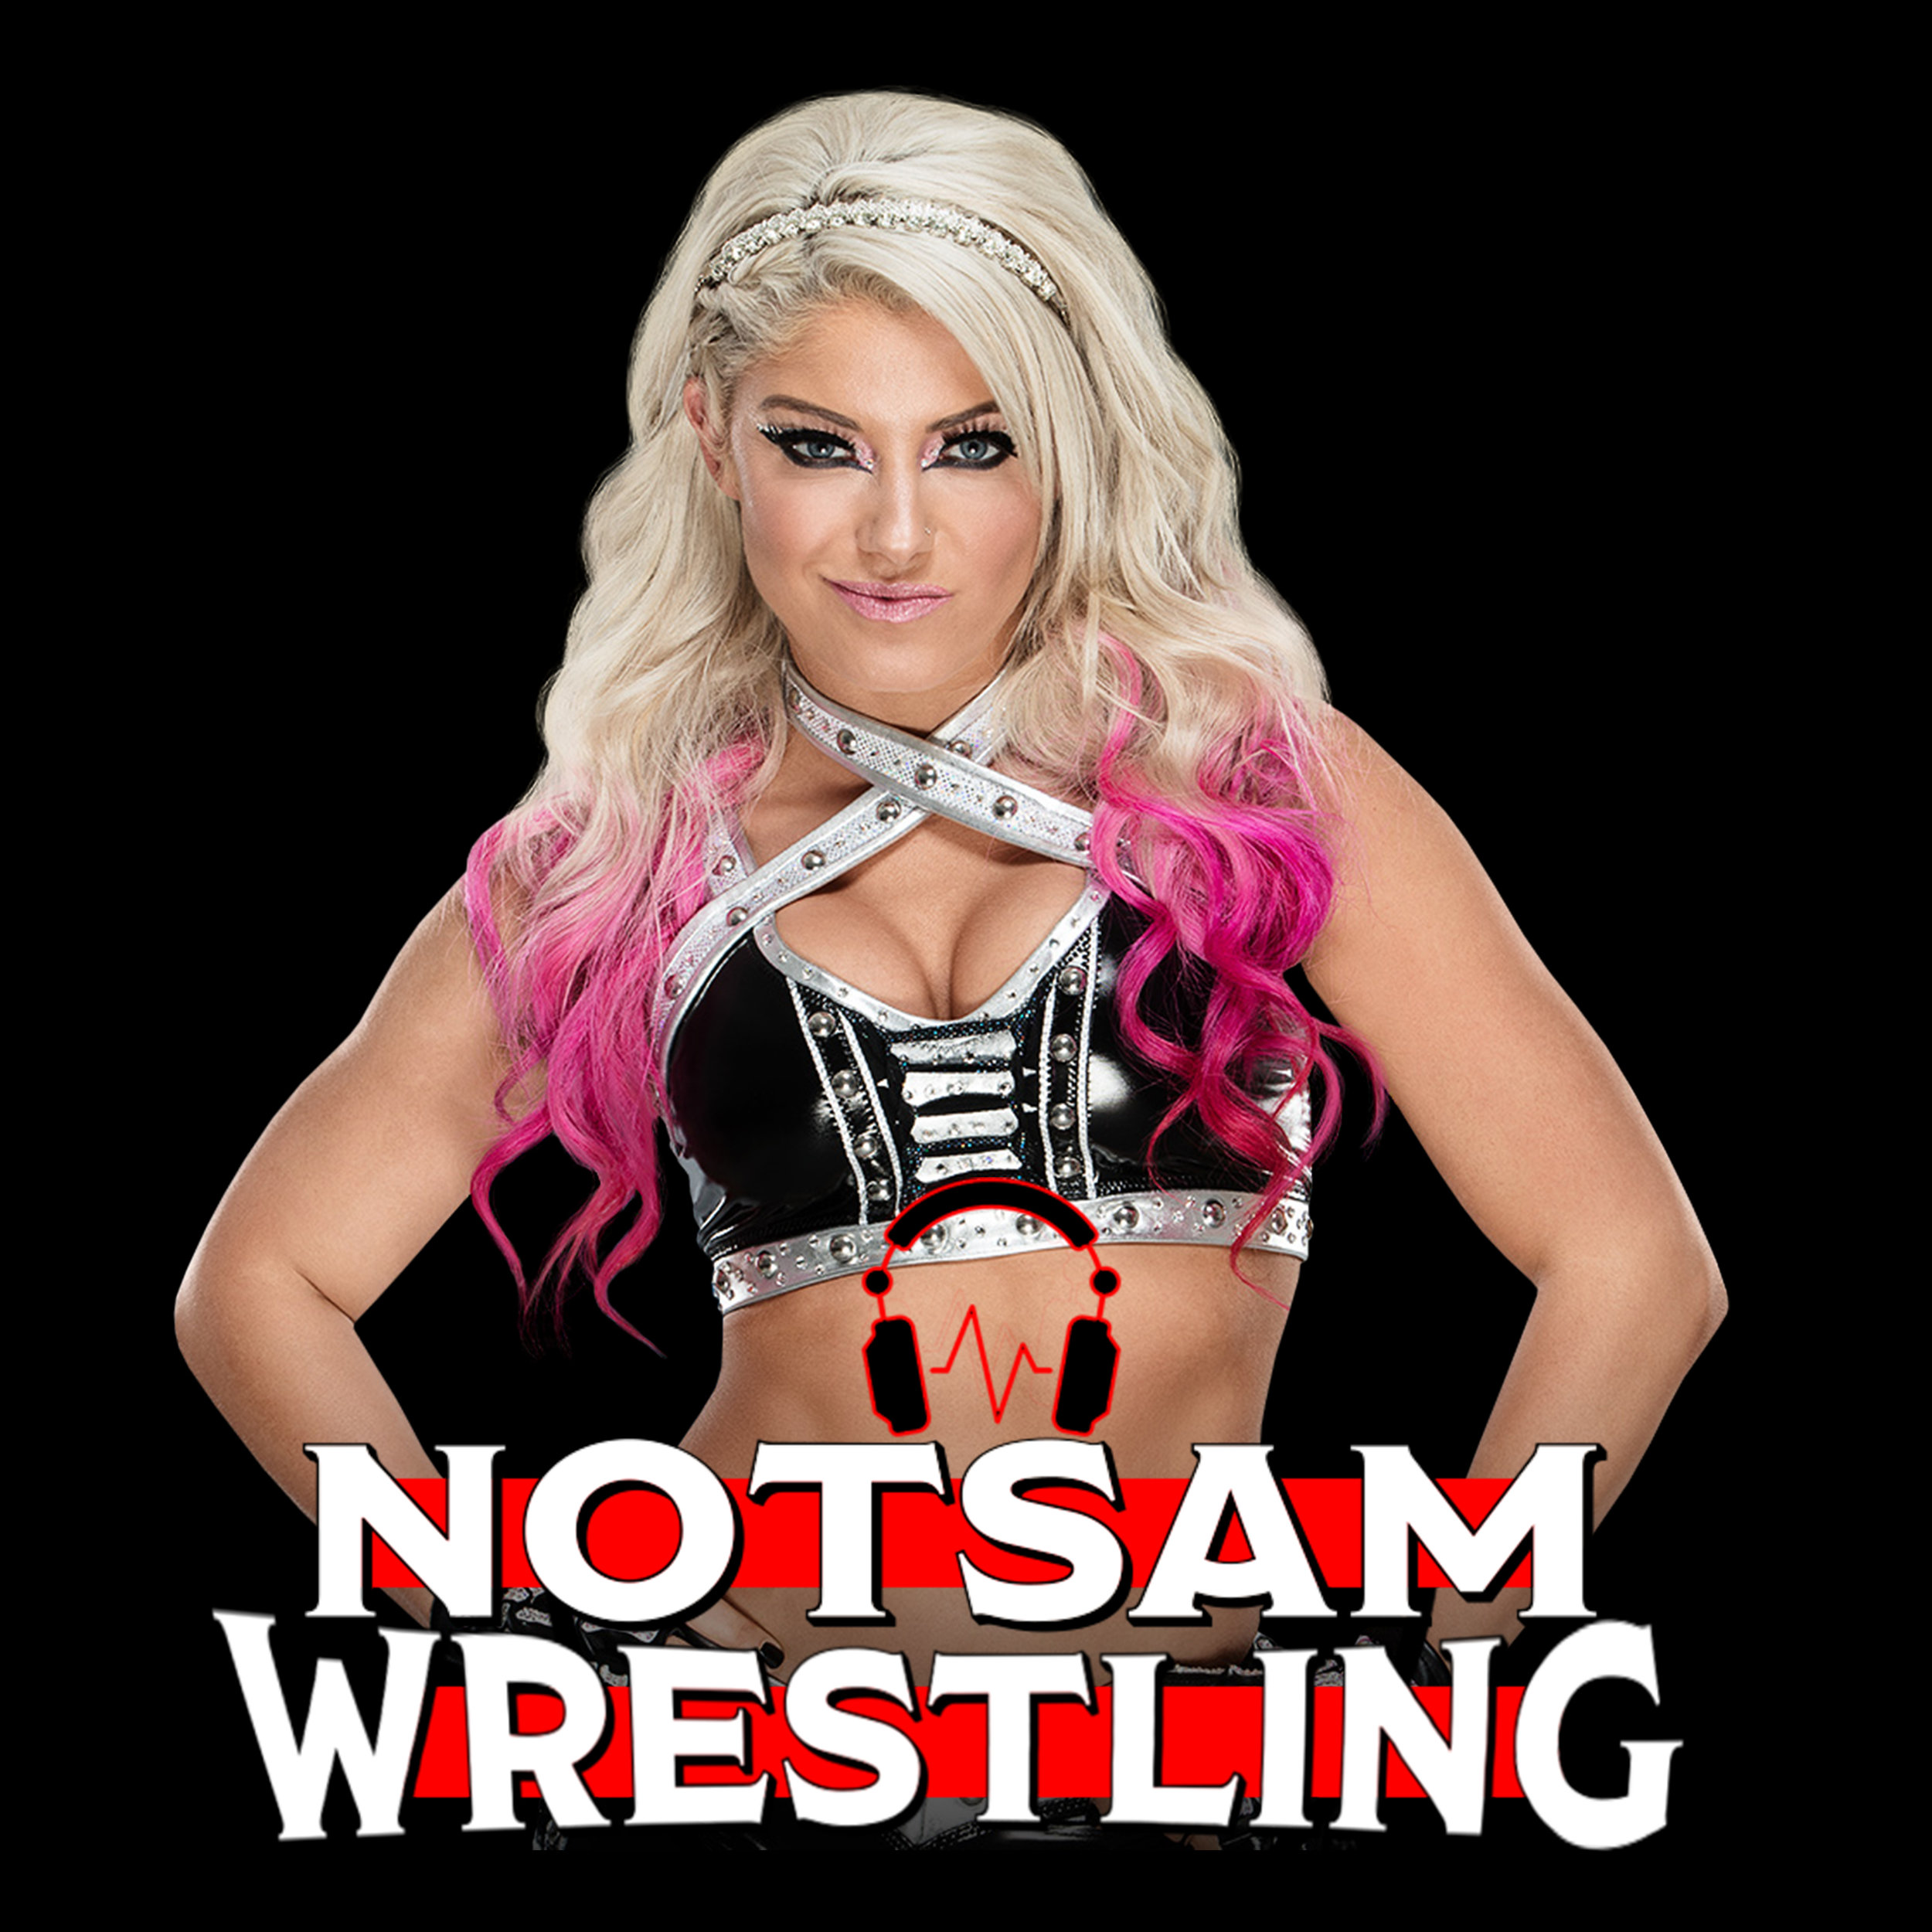 NotsamWrestling_AlexaBliss.jpg